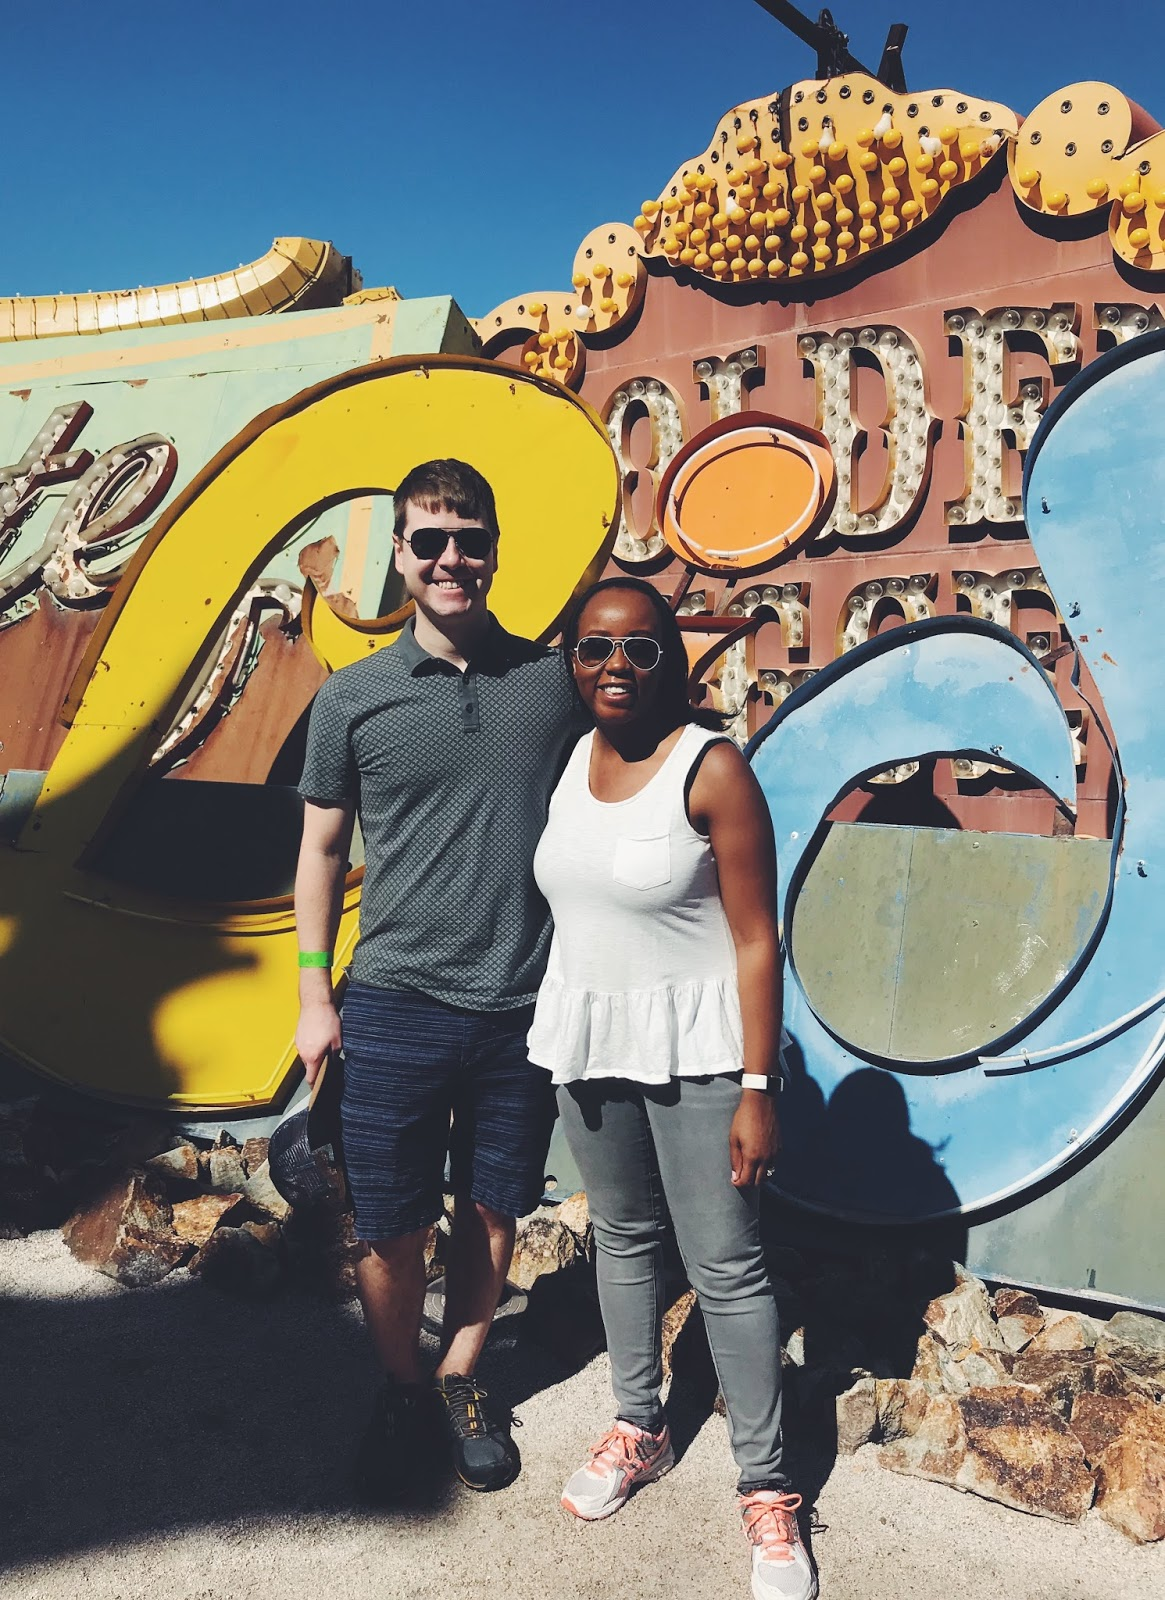 day trip diaries: Las Vegas